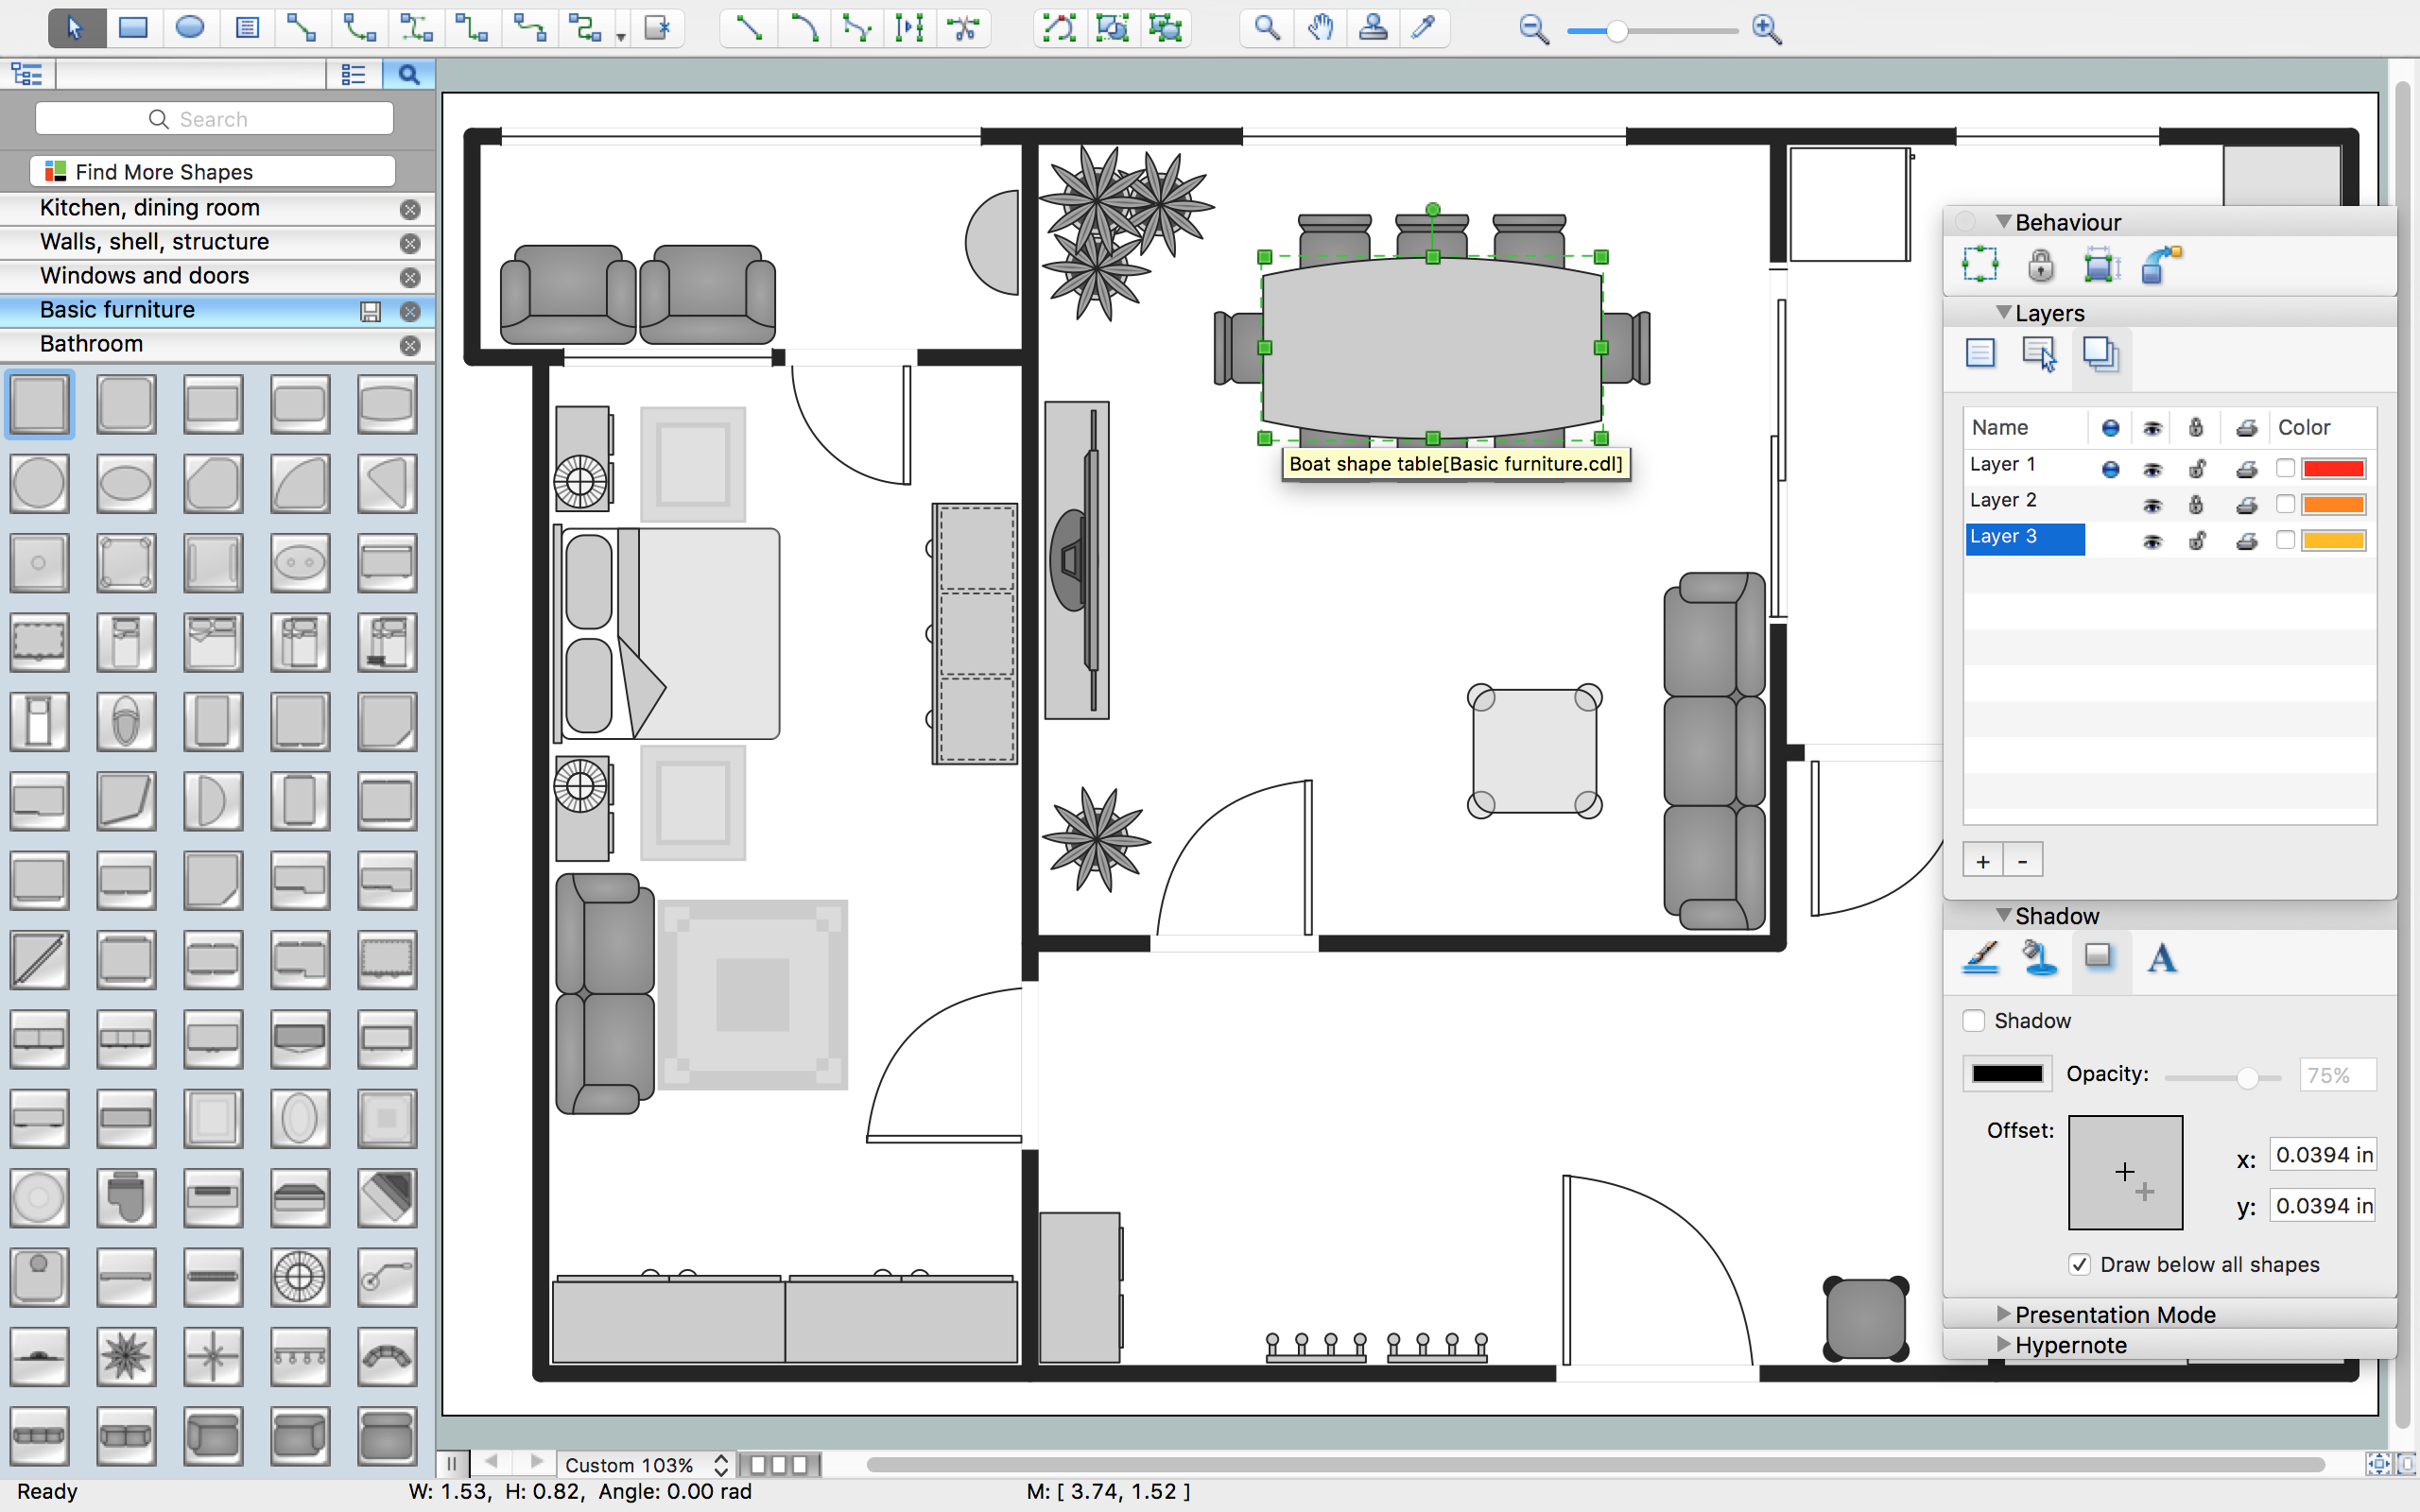 New Basic Floor Plan Solution for Complete Building Design Image